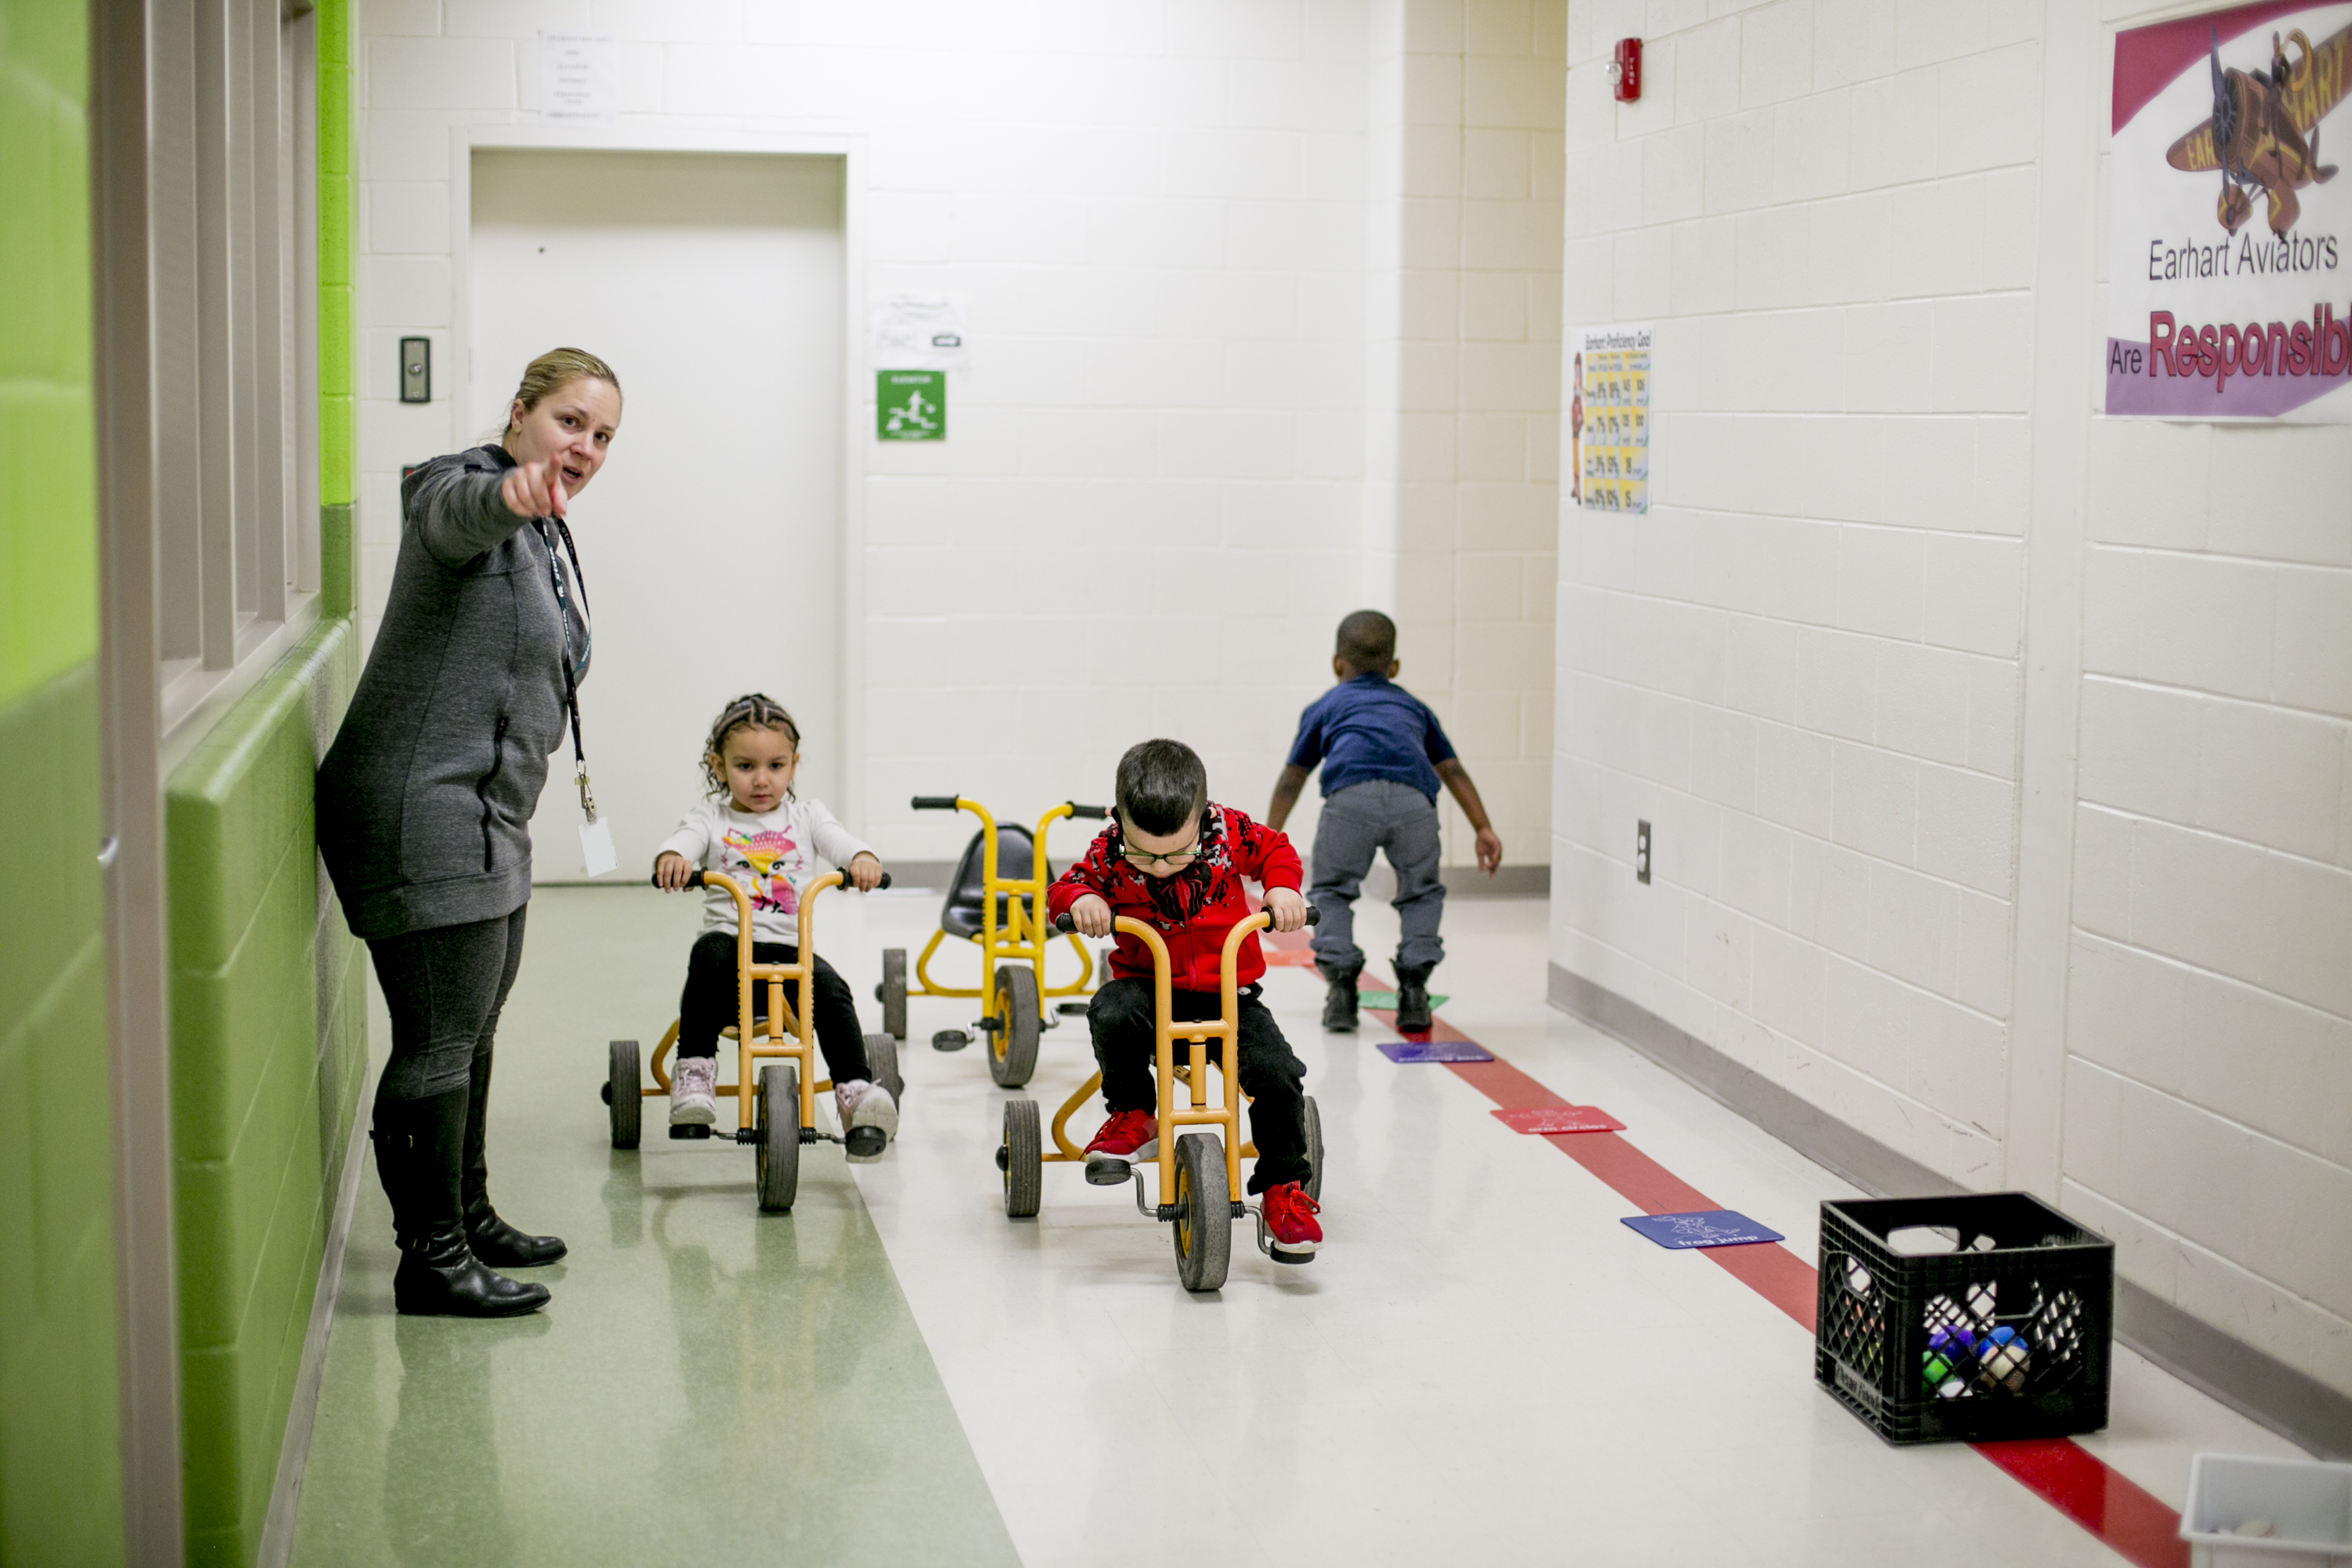 Pre-K students ride tricycles in the halls at Earhart Elementary-Middle school in southwest Detroit.